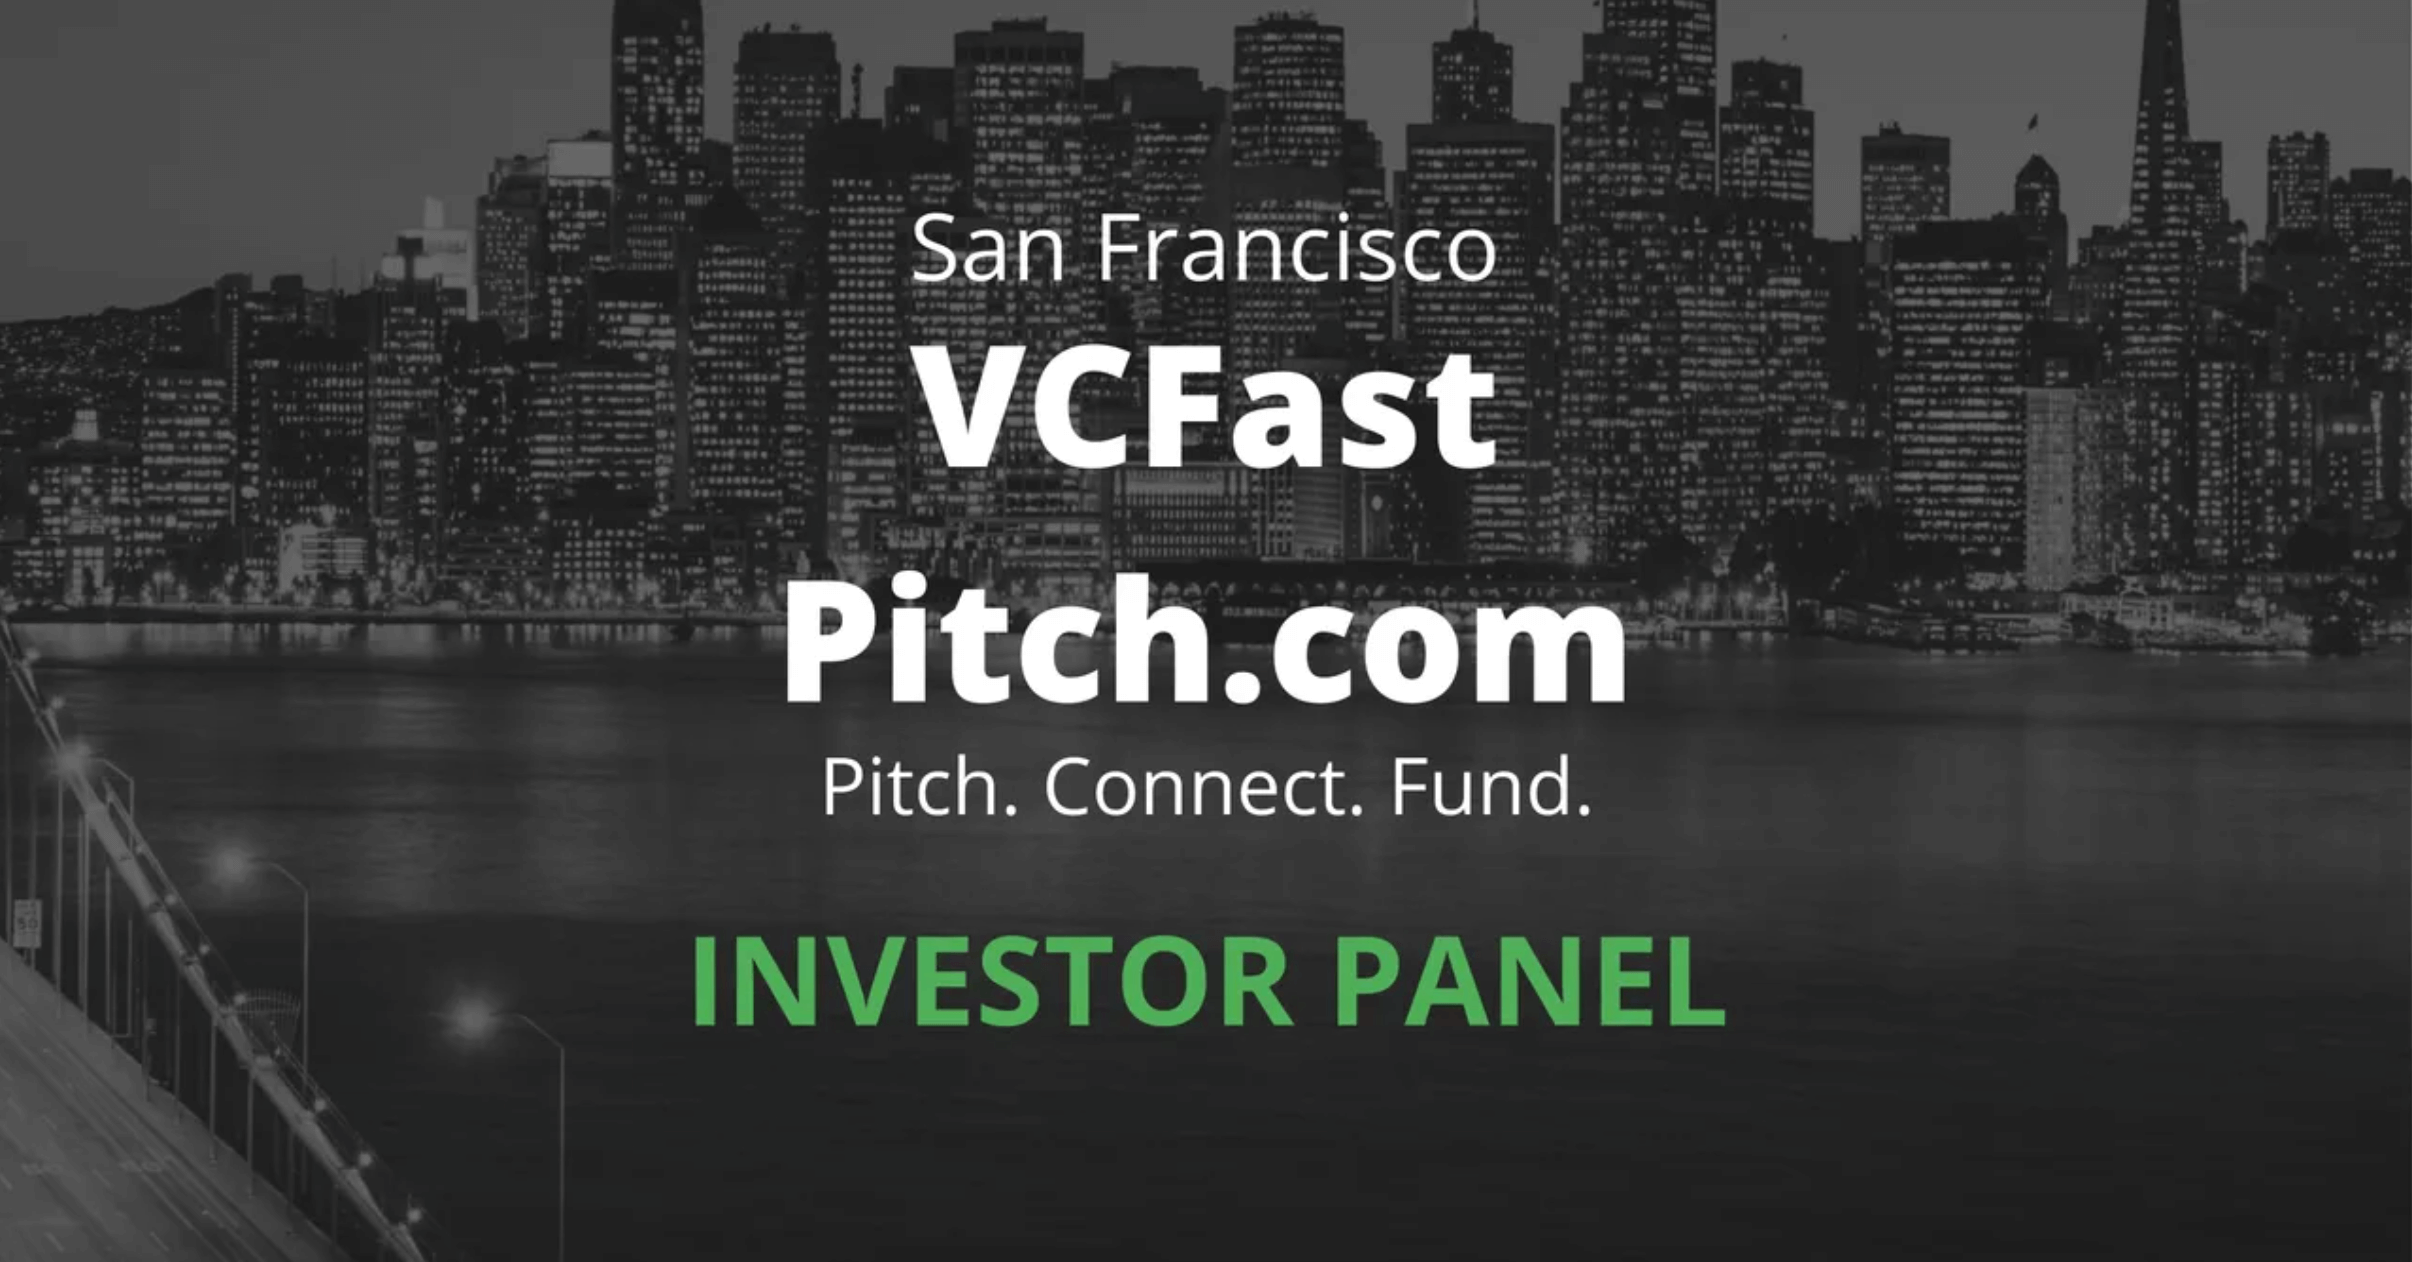 VC Fast Pitch Investor panelists